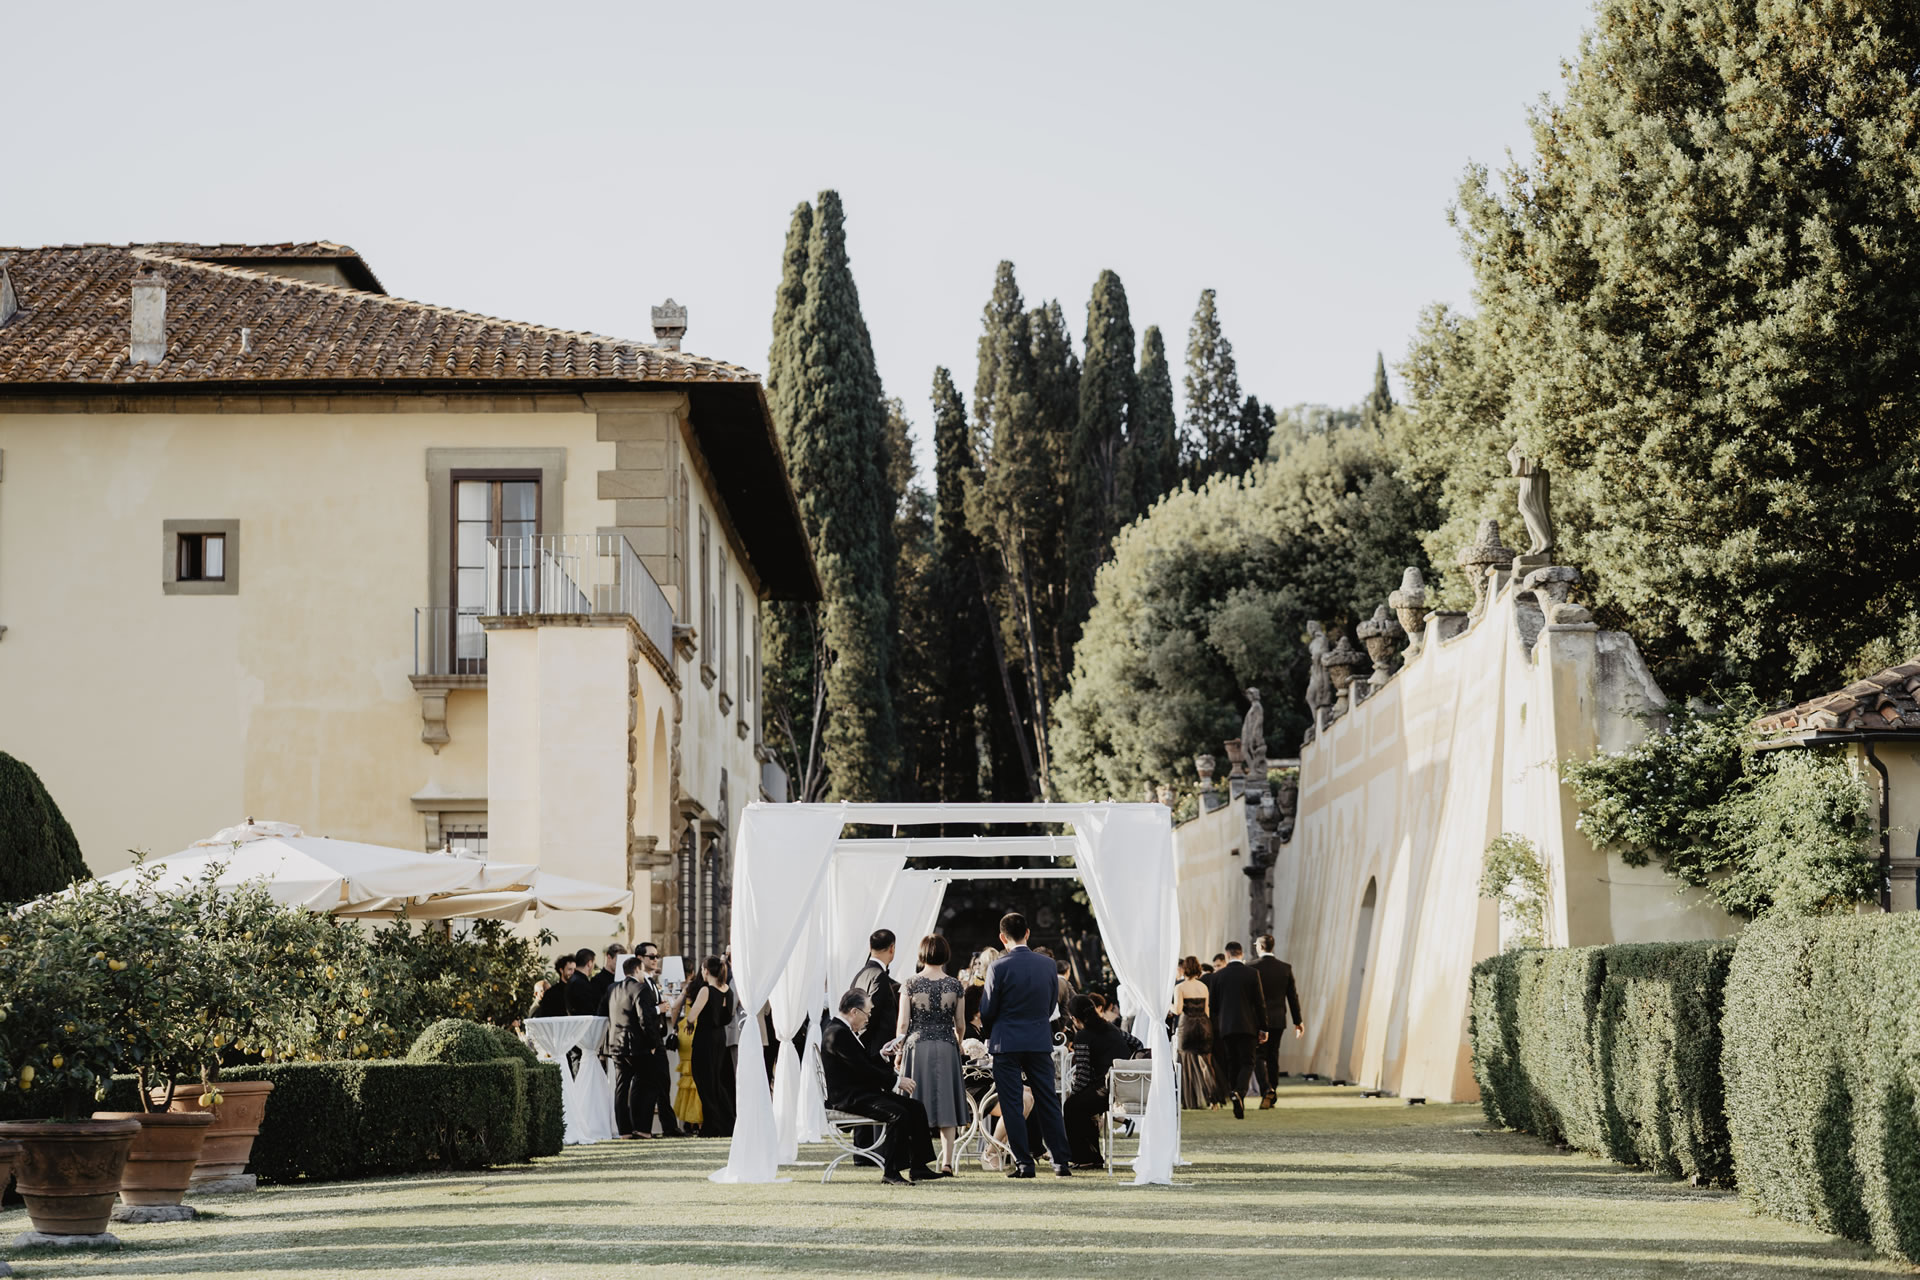 - 62 :: From Los angeles to Florence: a glamour asiatic wedding :: Luxury wedding photography - 61 ::  - 62